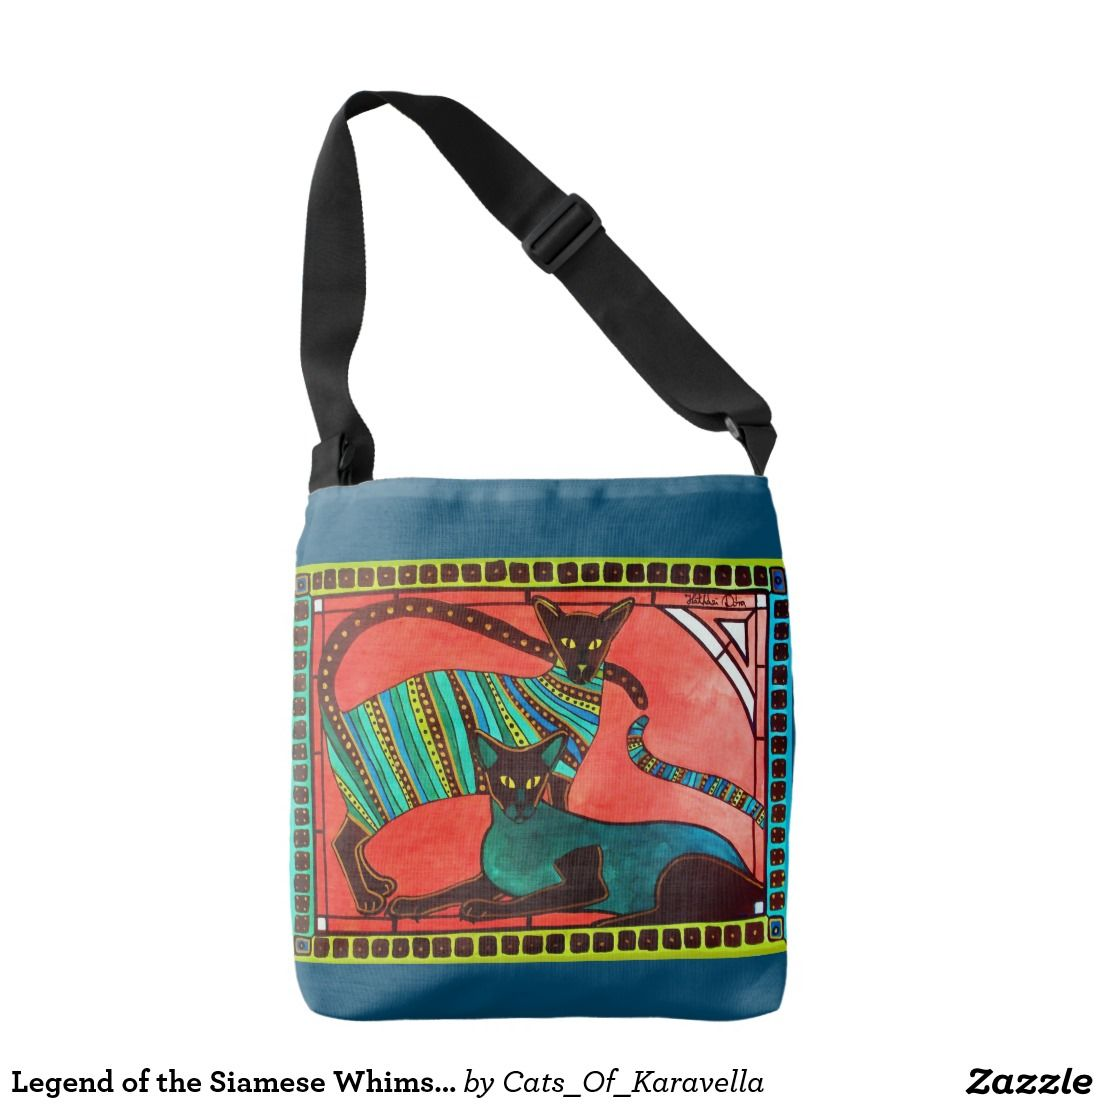 Legend of the Siamese Whimsical Cat Designs Crossbody Bag. Cat paintings by Dora Hathazi Mendes. Cat Designs by Cats of Karavella for #catlovers by #dorahathazi